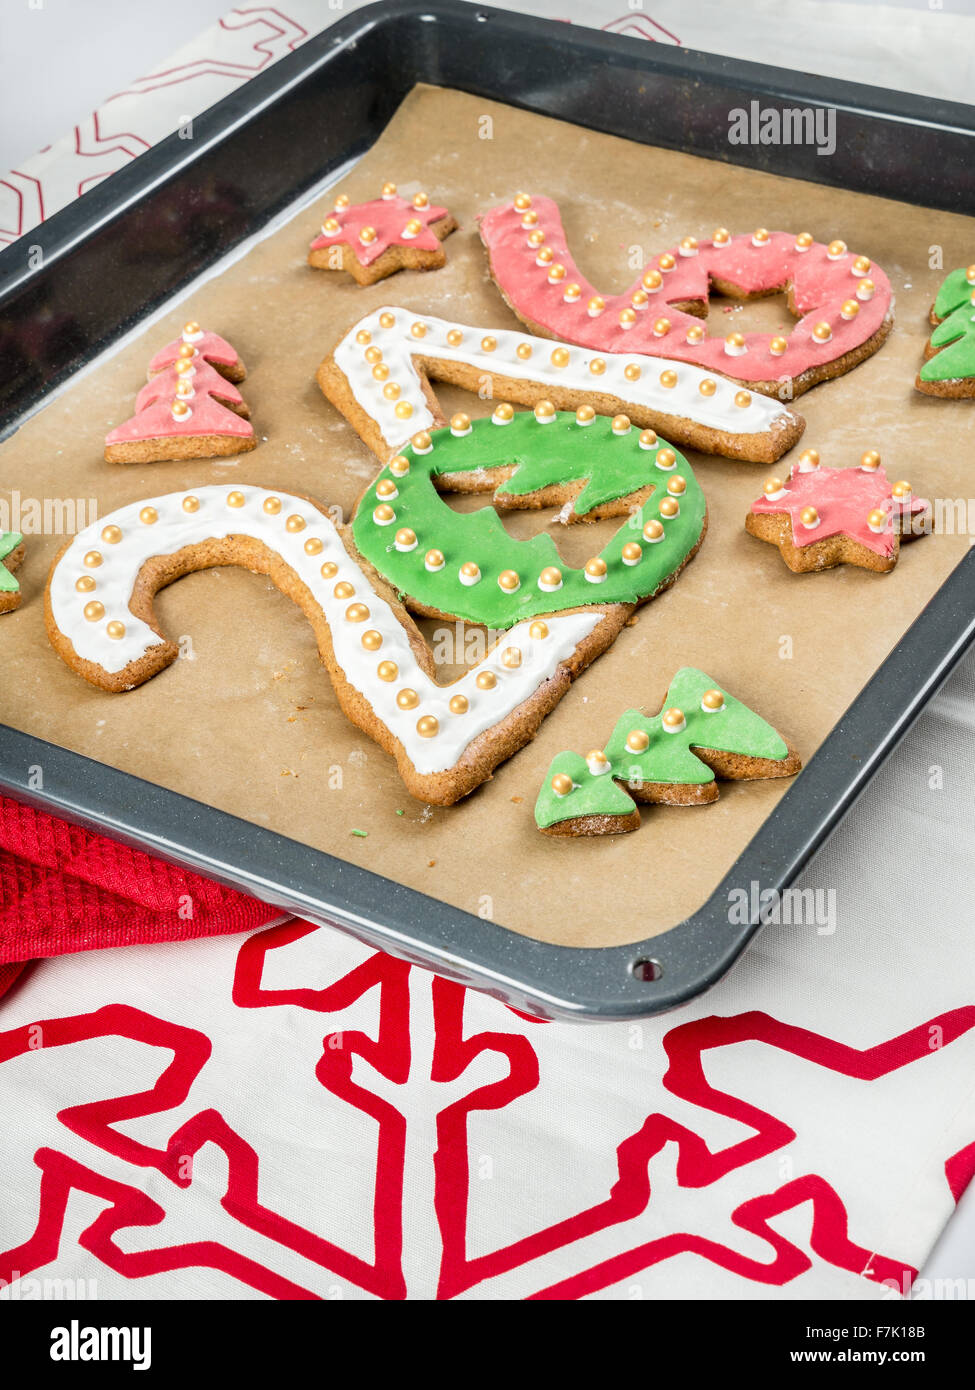 Home-made gingerbread cookies in shape of 2016 New Year digits on baking tray - Stock Image